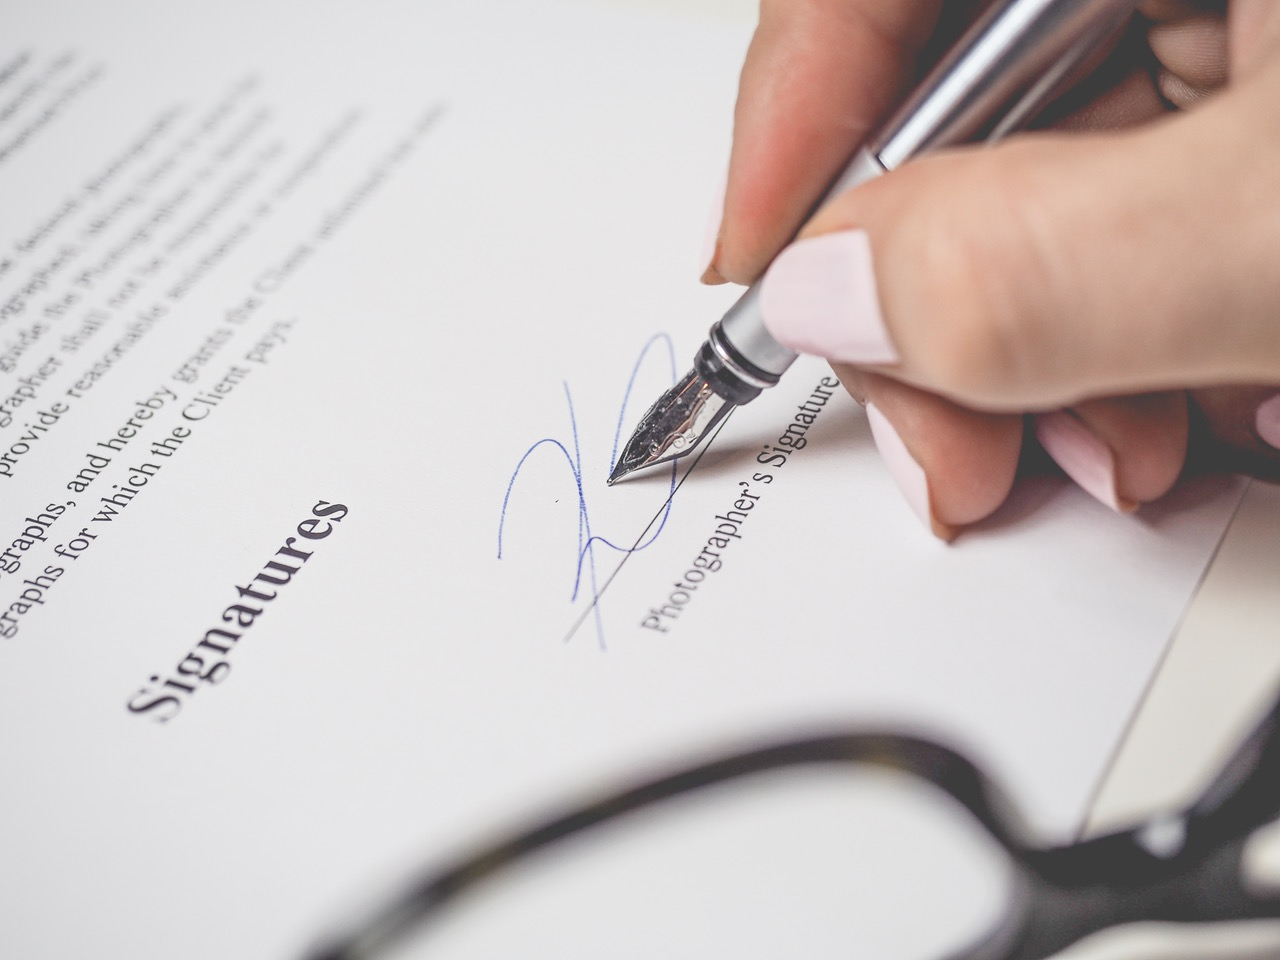 when you hire a web designer, make sure you understand the contract fully before signing